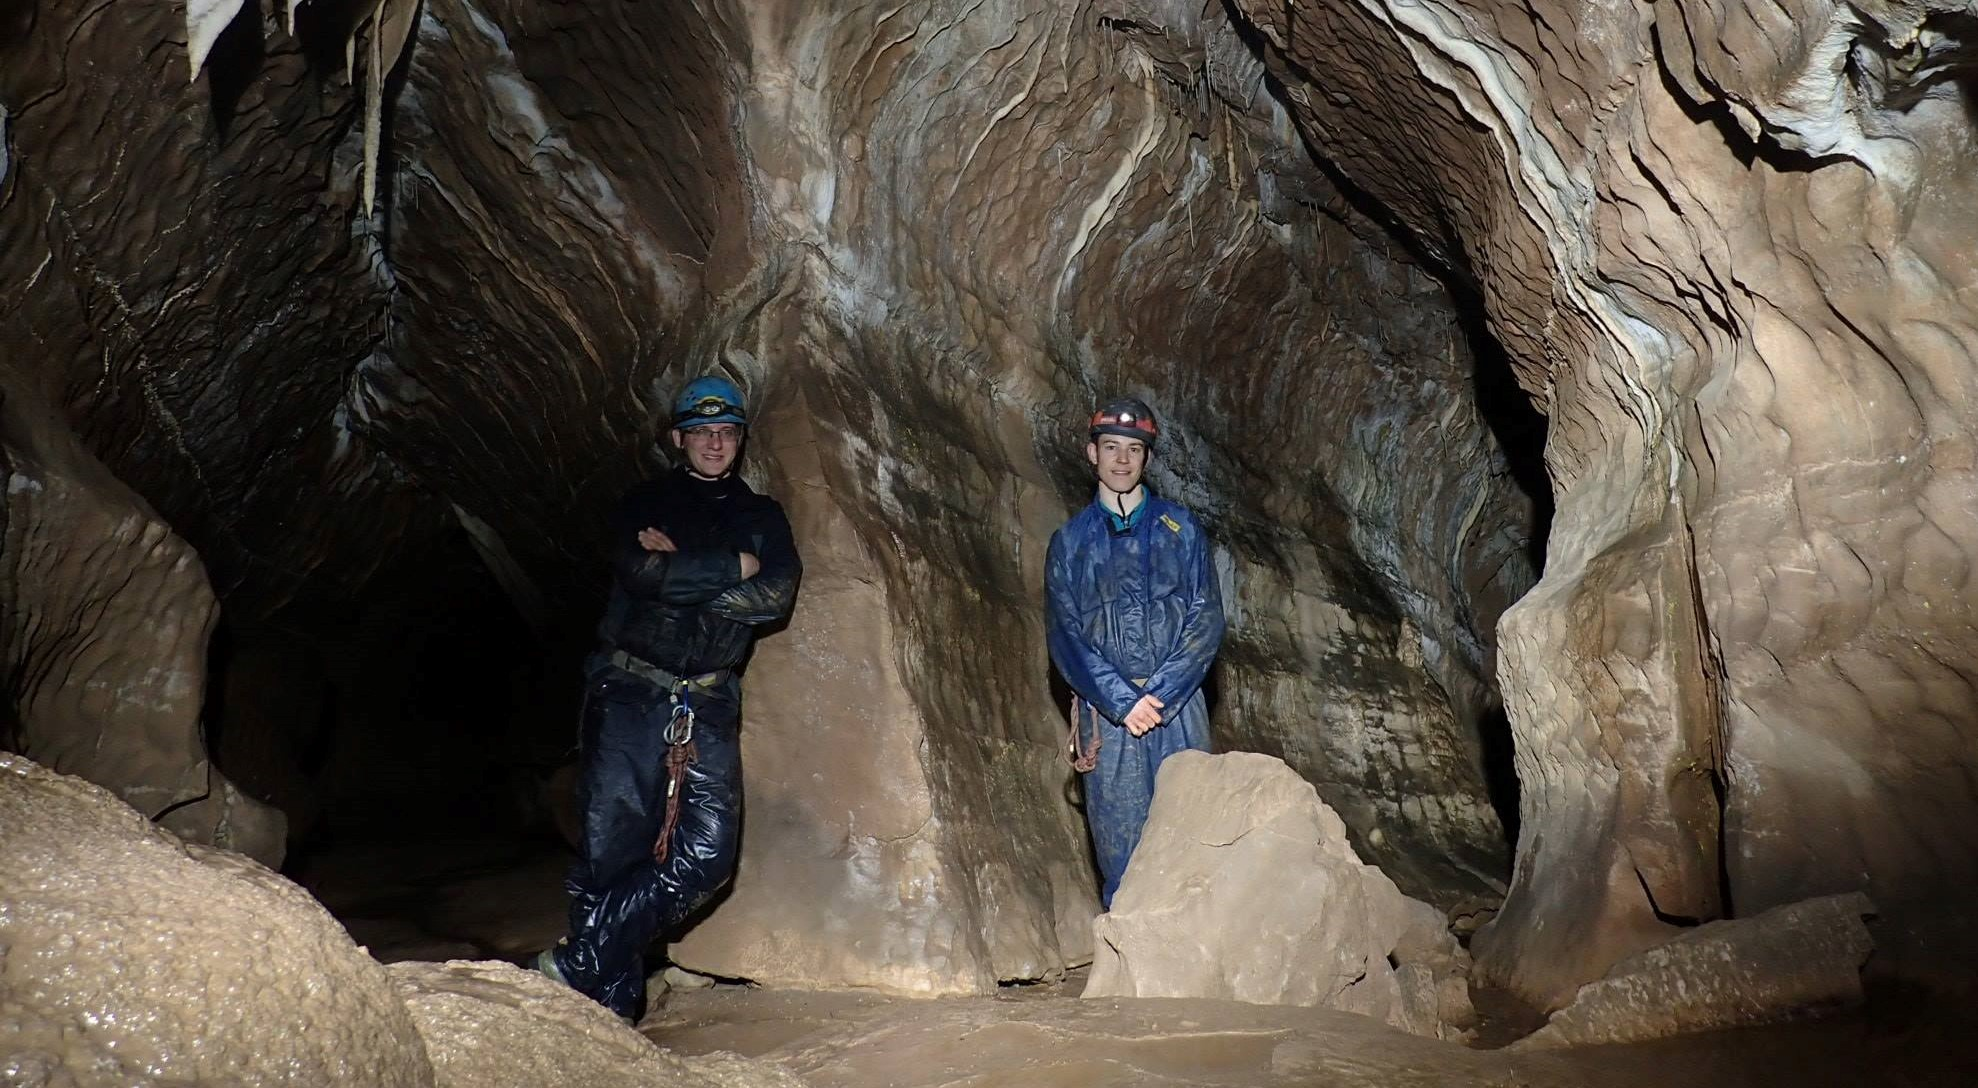 Caving in Brecon